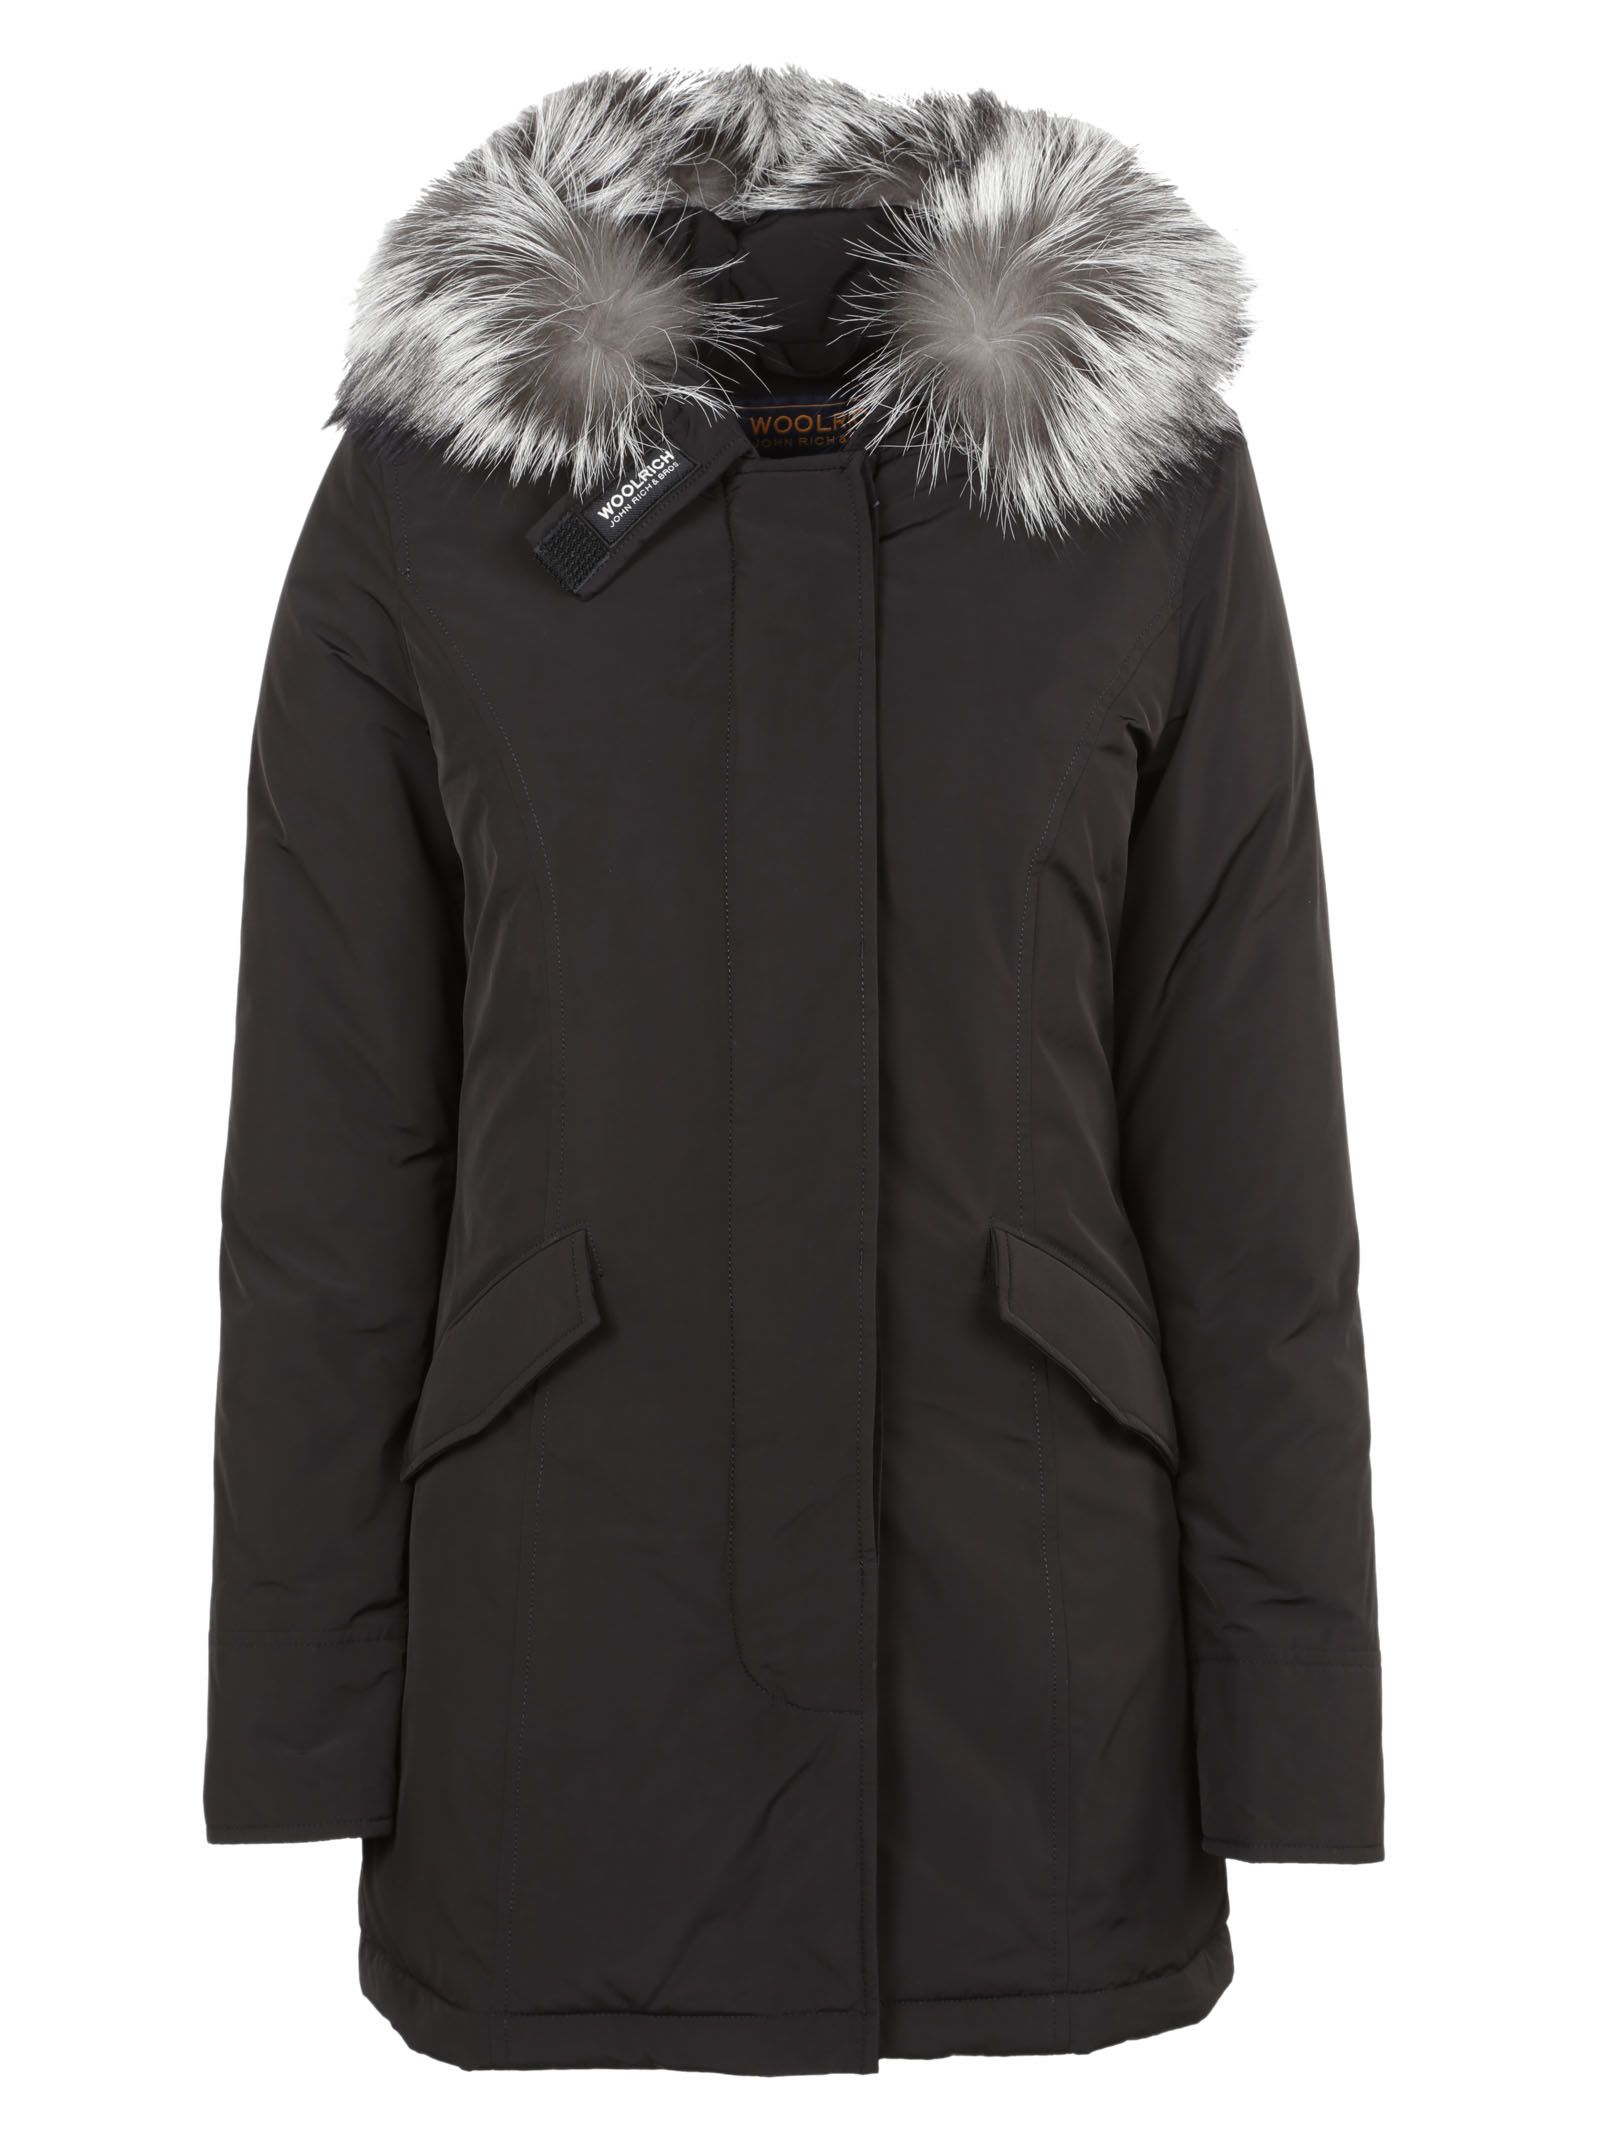 woolrich woolrich luxury arctic parka black women 39 s coats italist. Black Bedroom Furniture Sets. Home Design Ideas